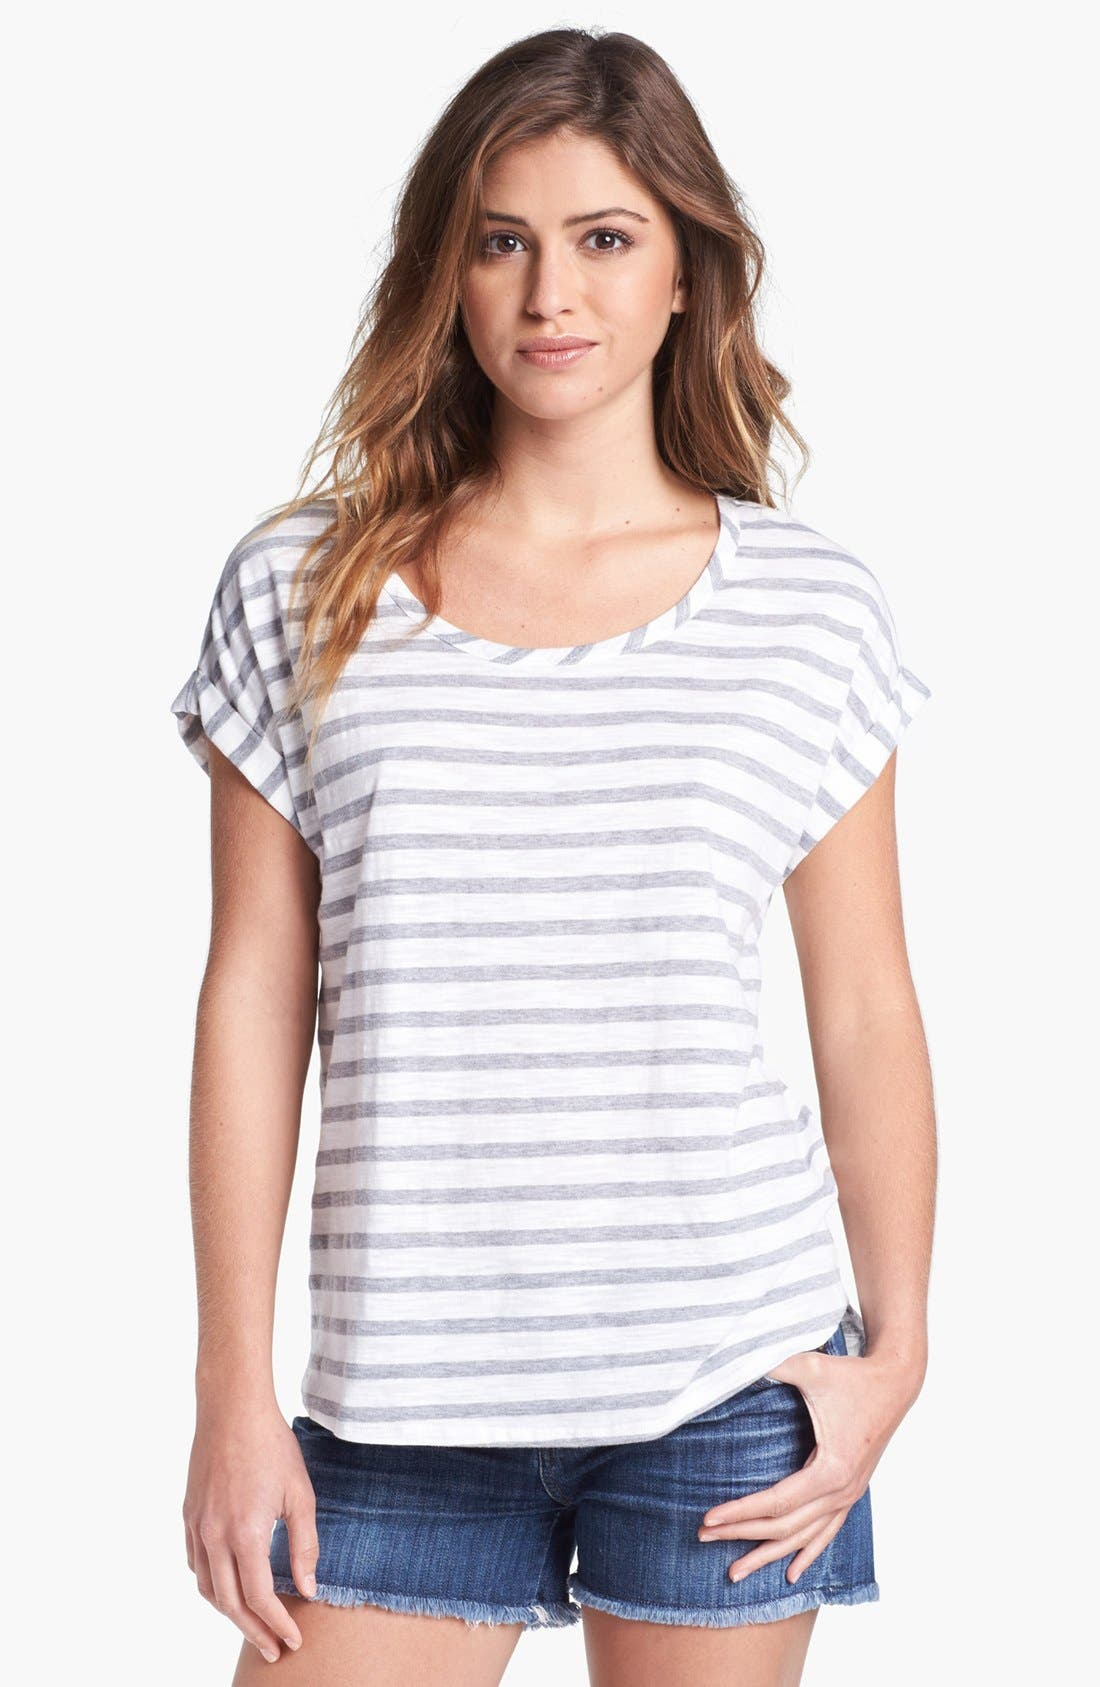 Alternate Image 1 Selected - Two by Vince Camuto Stripe Roll Sleeve Tee